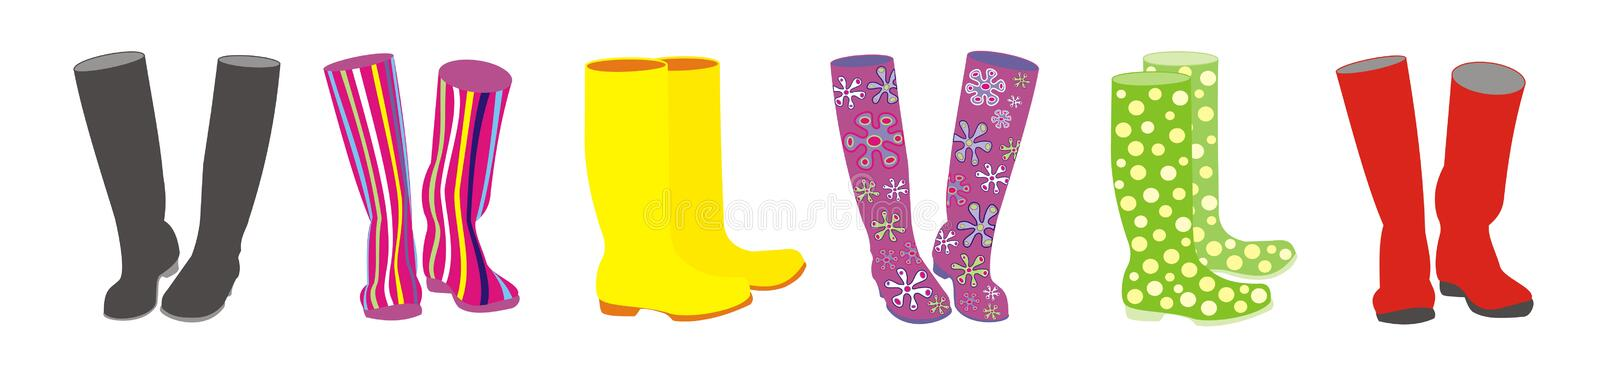 Funky boots vector illustration